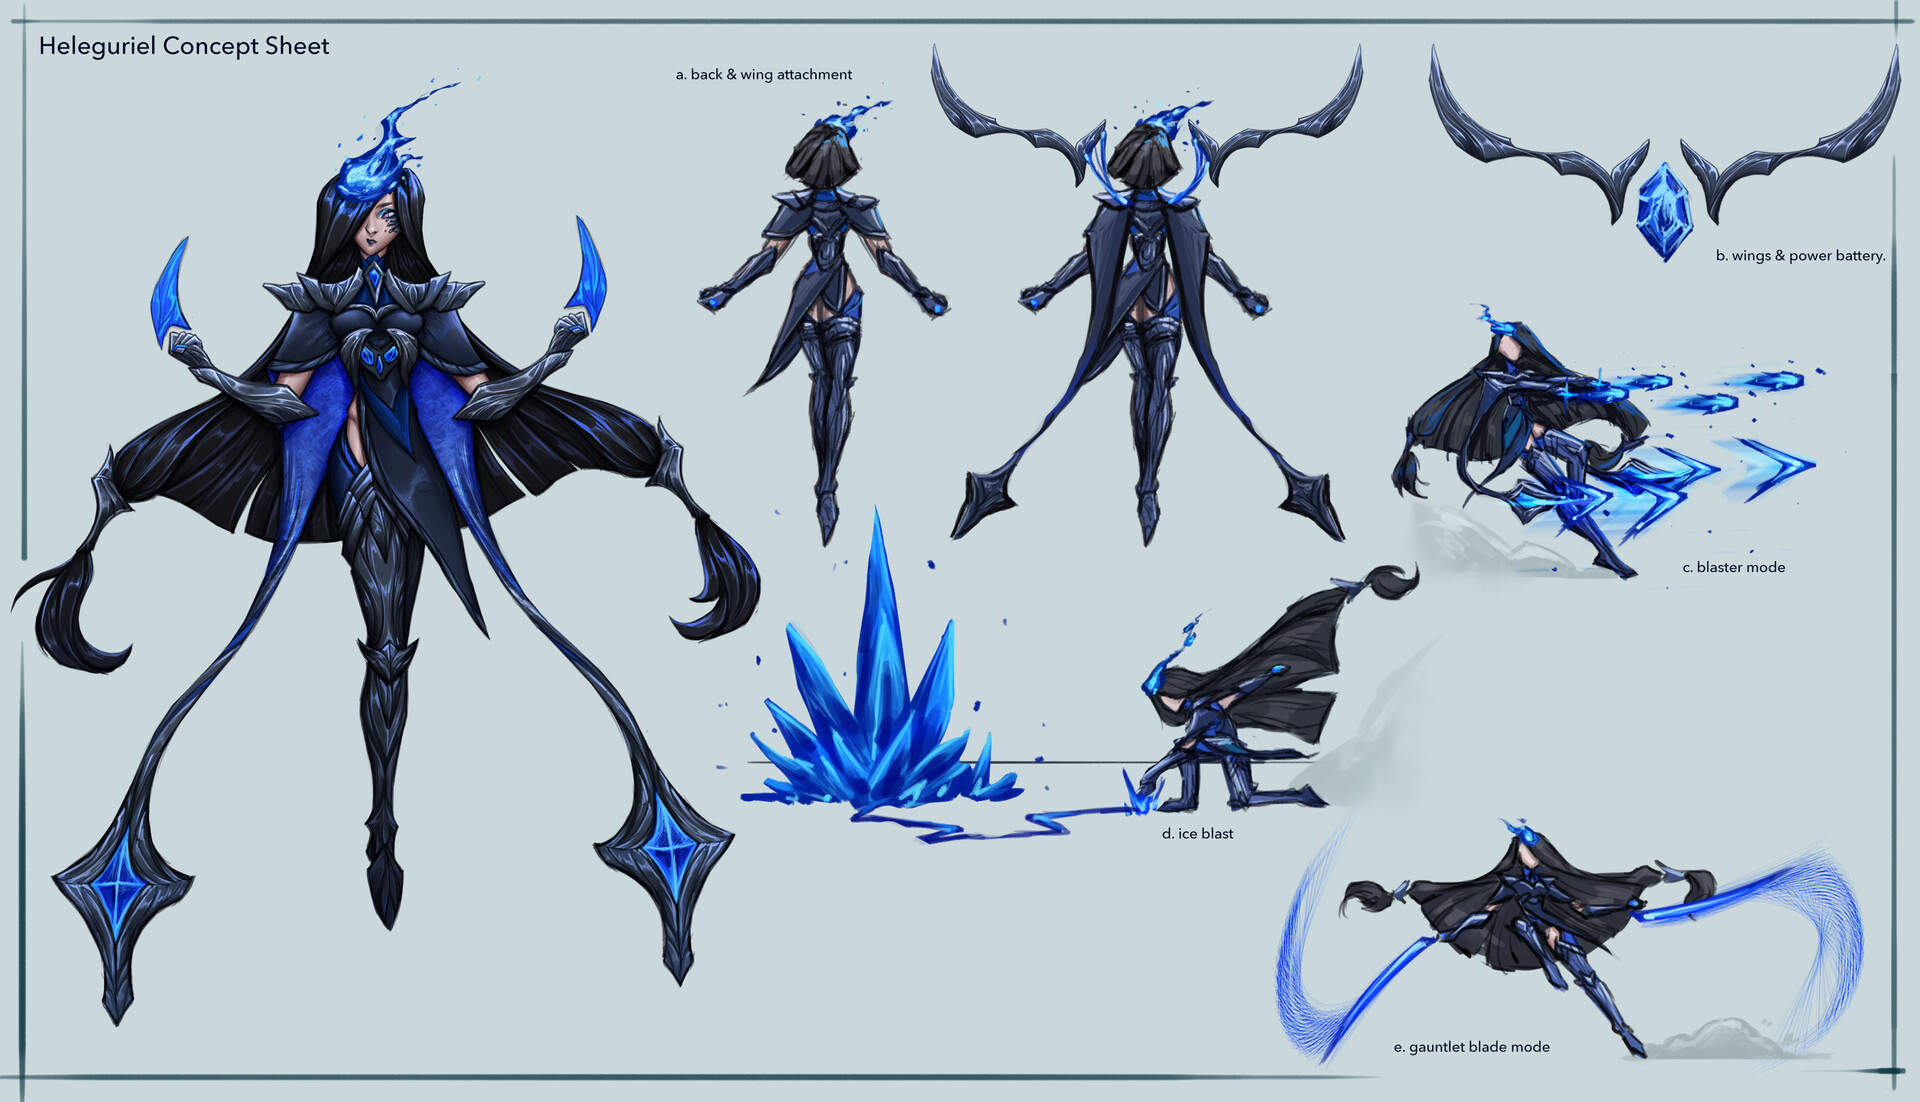 Devin yang as heleguriel concept sheet